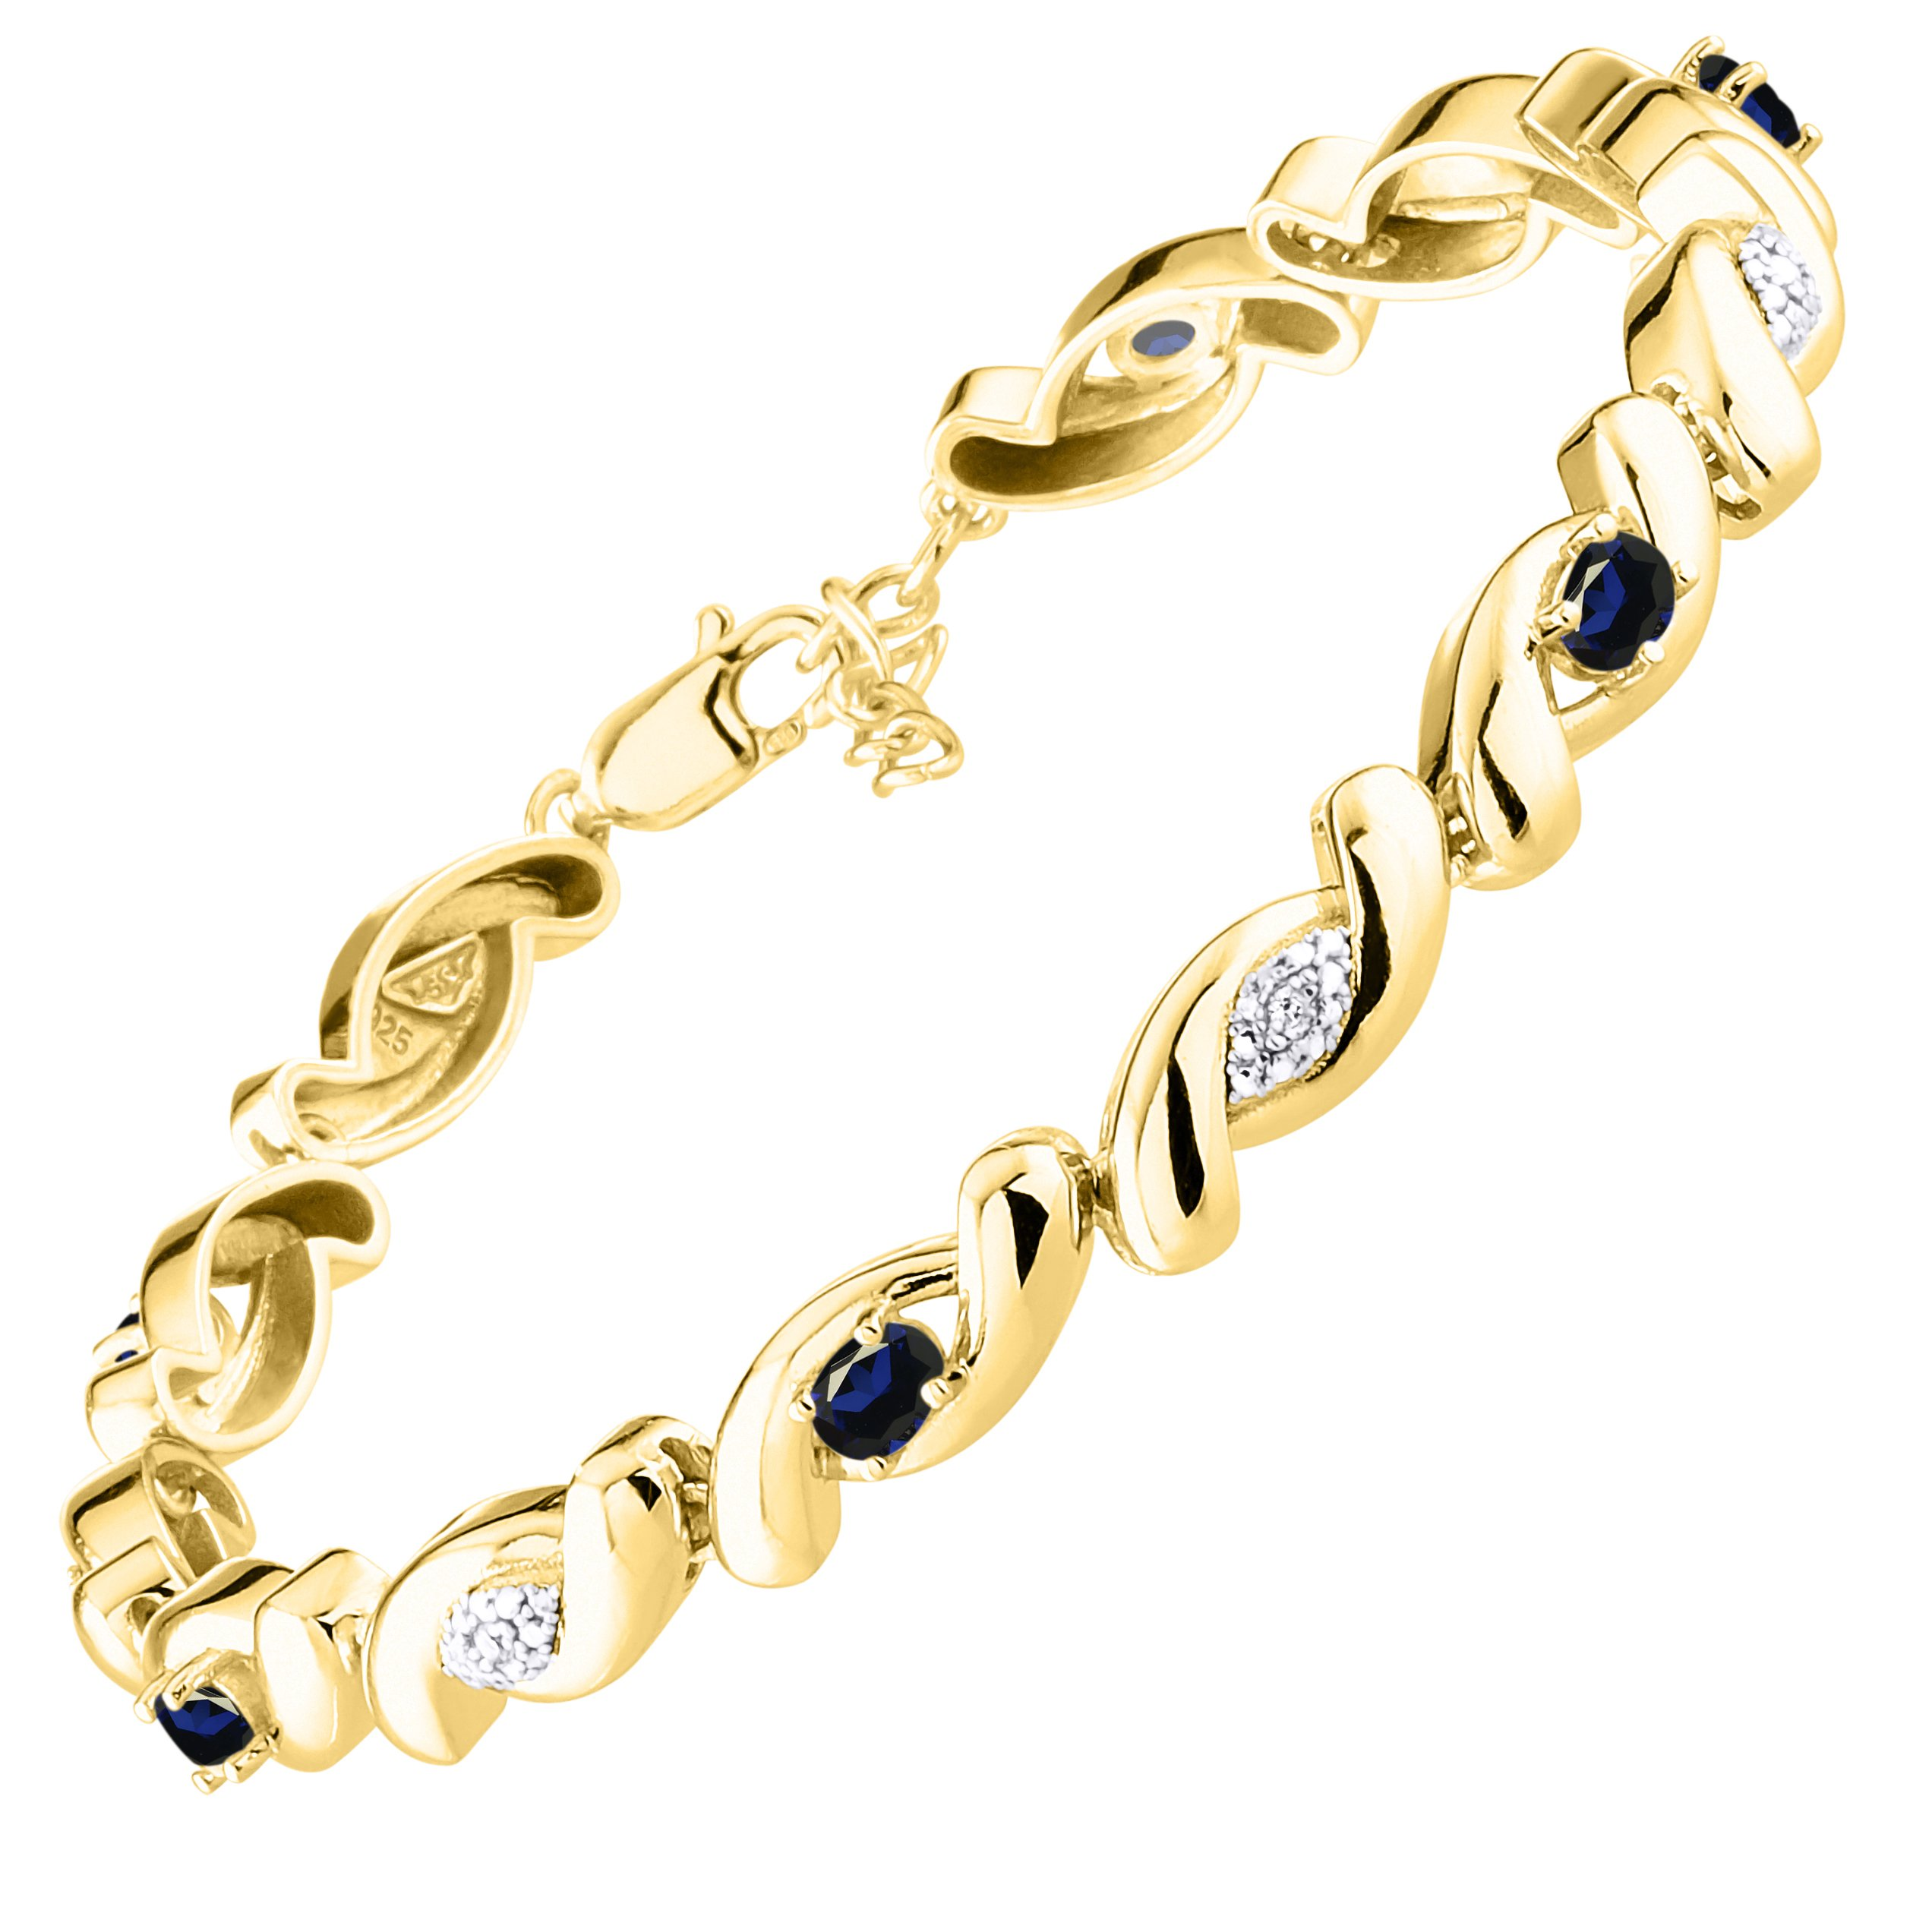 Stunning Sapphire & Diamond Tennis Bracelet Set in Yellow Gold Plated Silver - Adjustable to fit 7'' - 8'' Wrist by Rylos